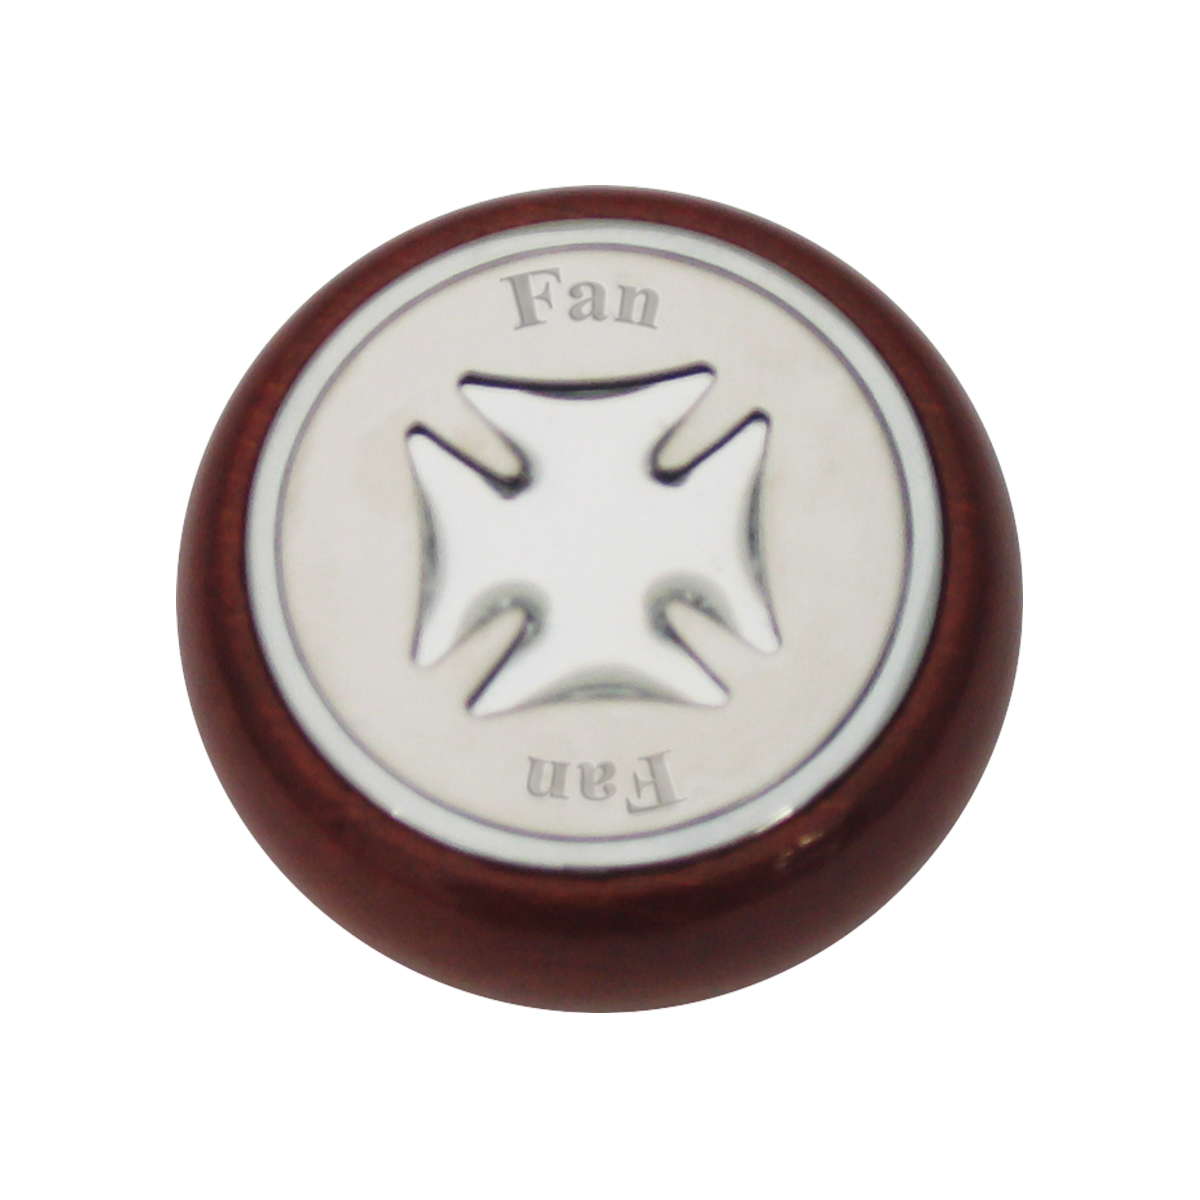 95426 Silver Iron Cross Dashboard Control Knob w/ Fan Script